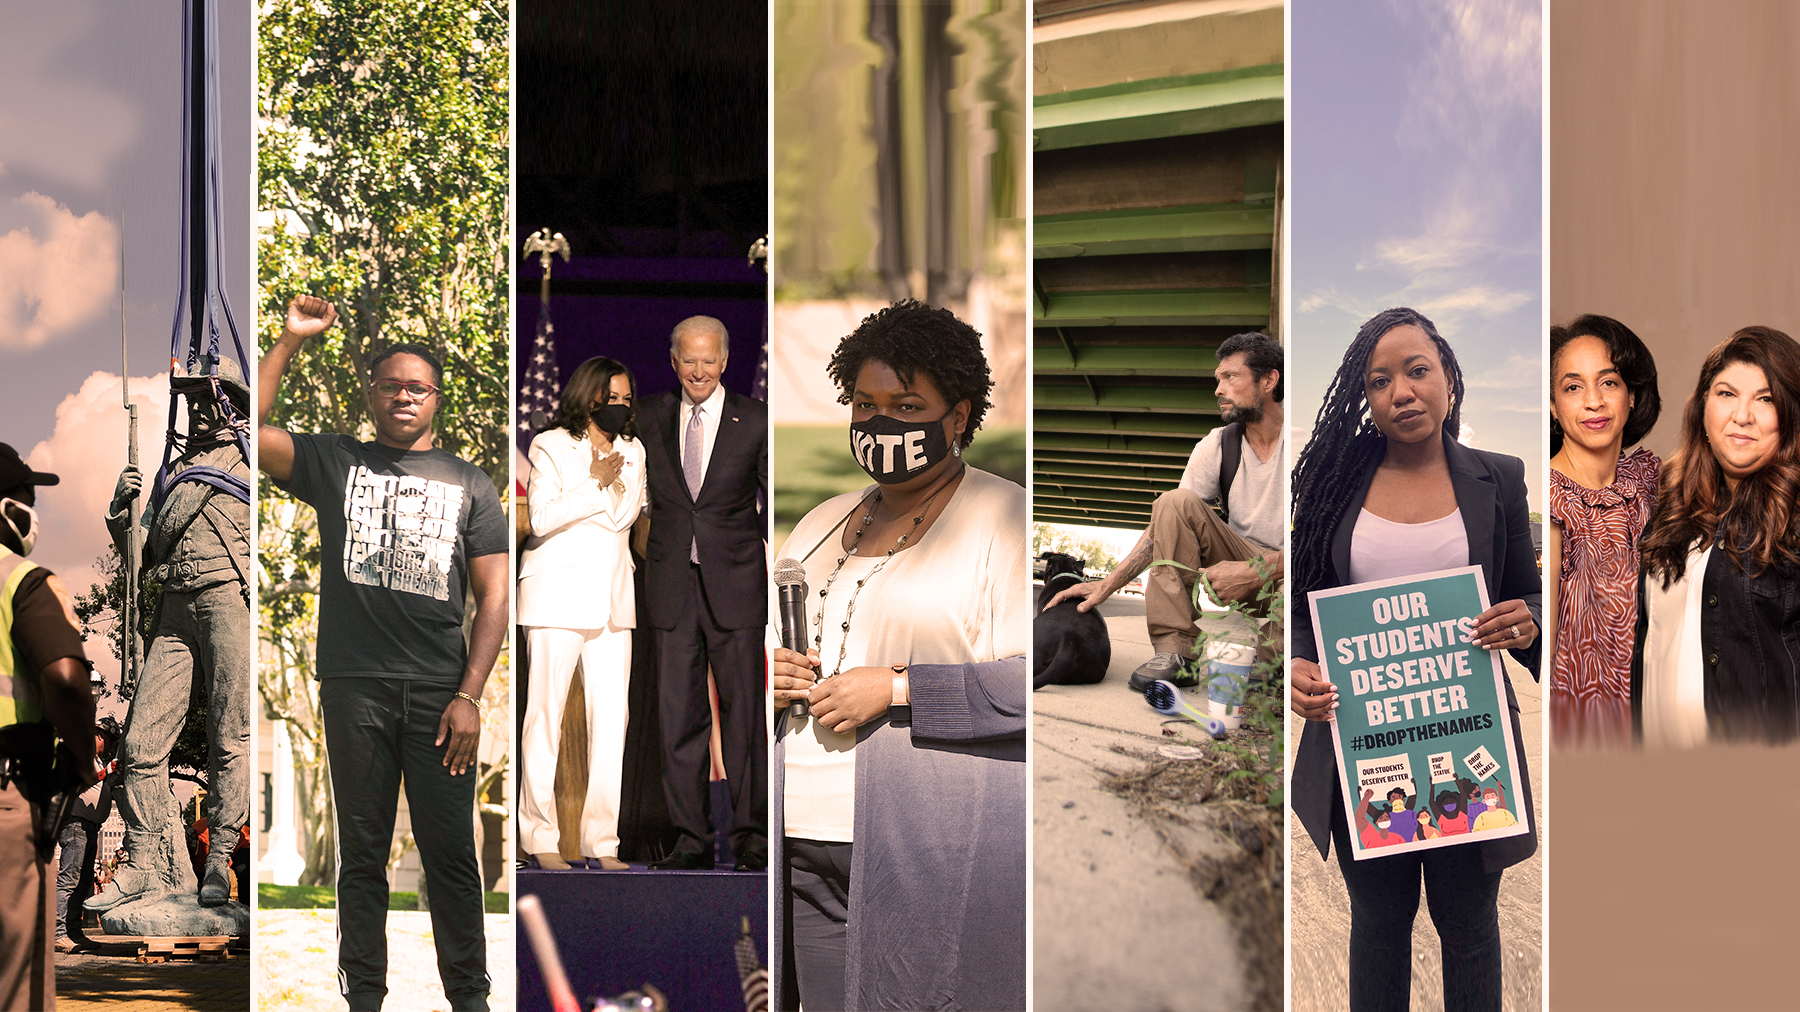 www.splcenter.org: SPLC President: Stories of hope from a difficult year